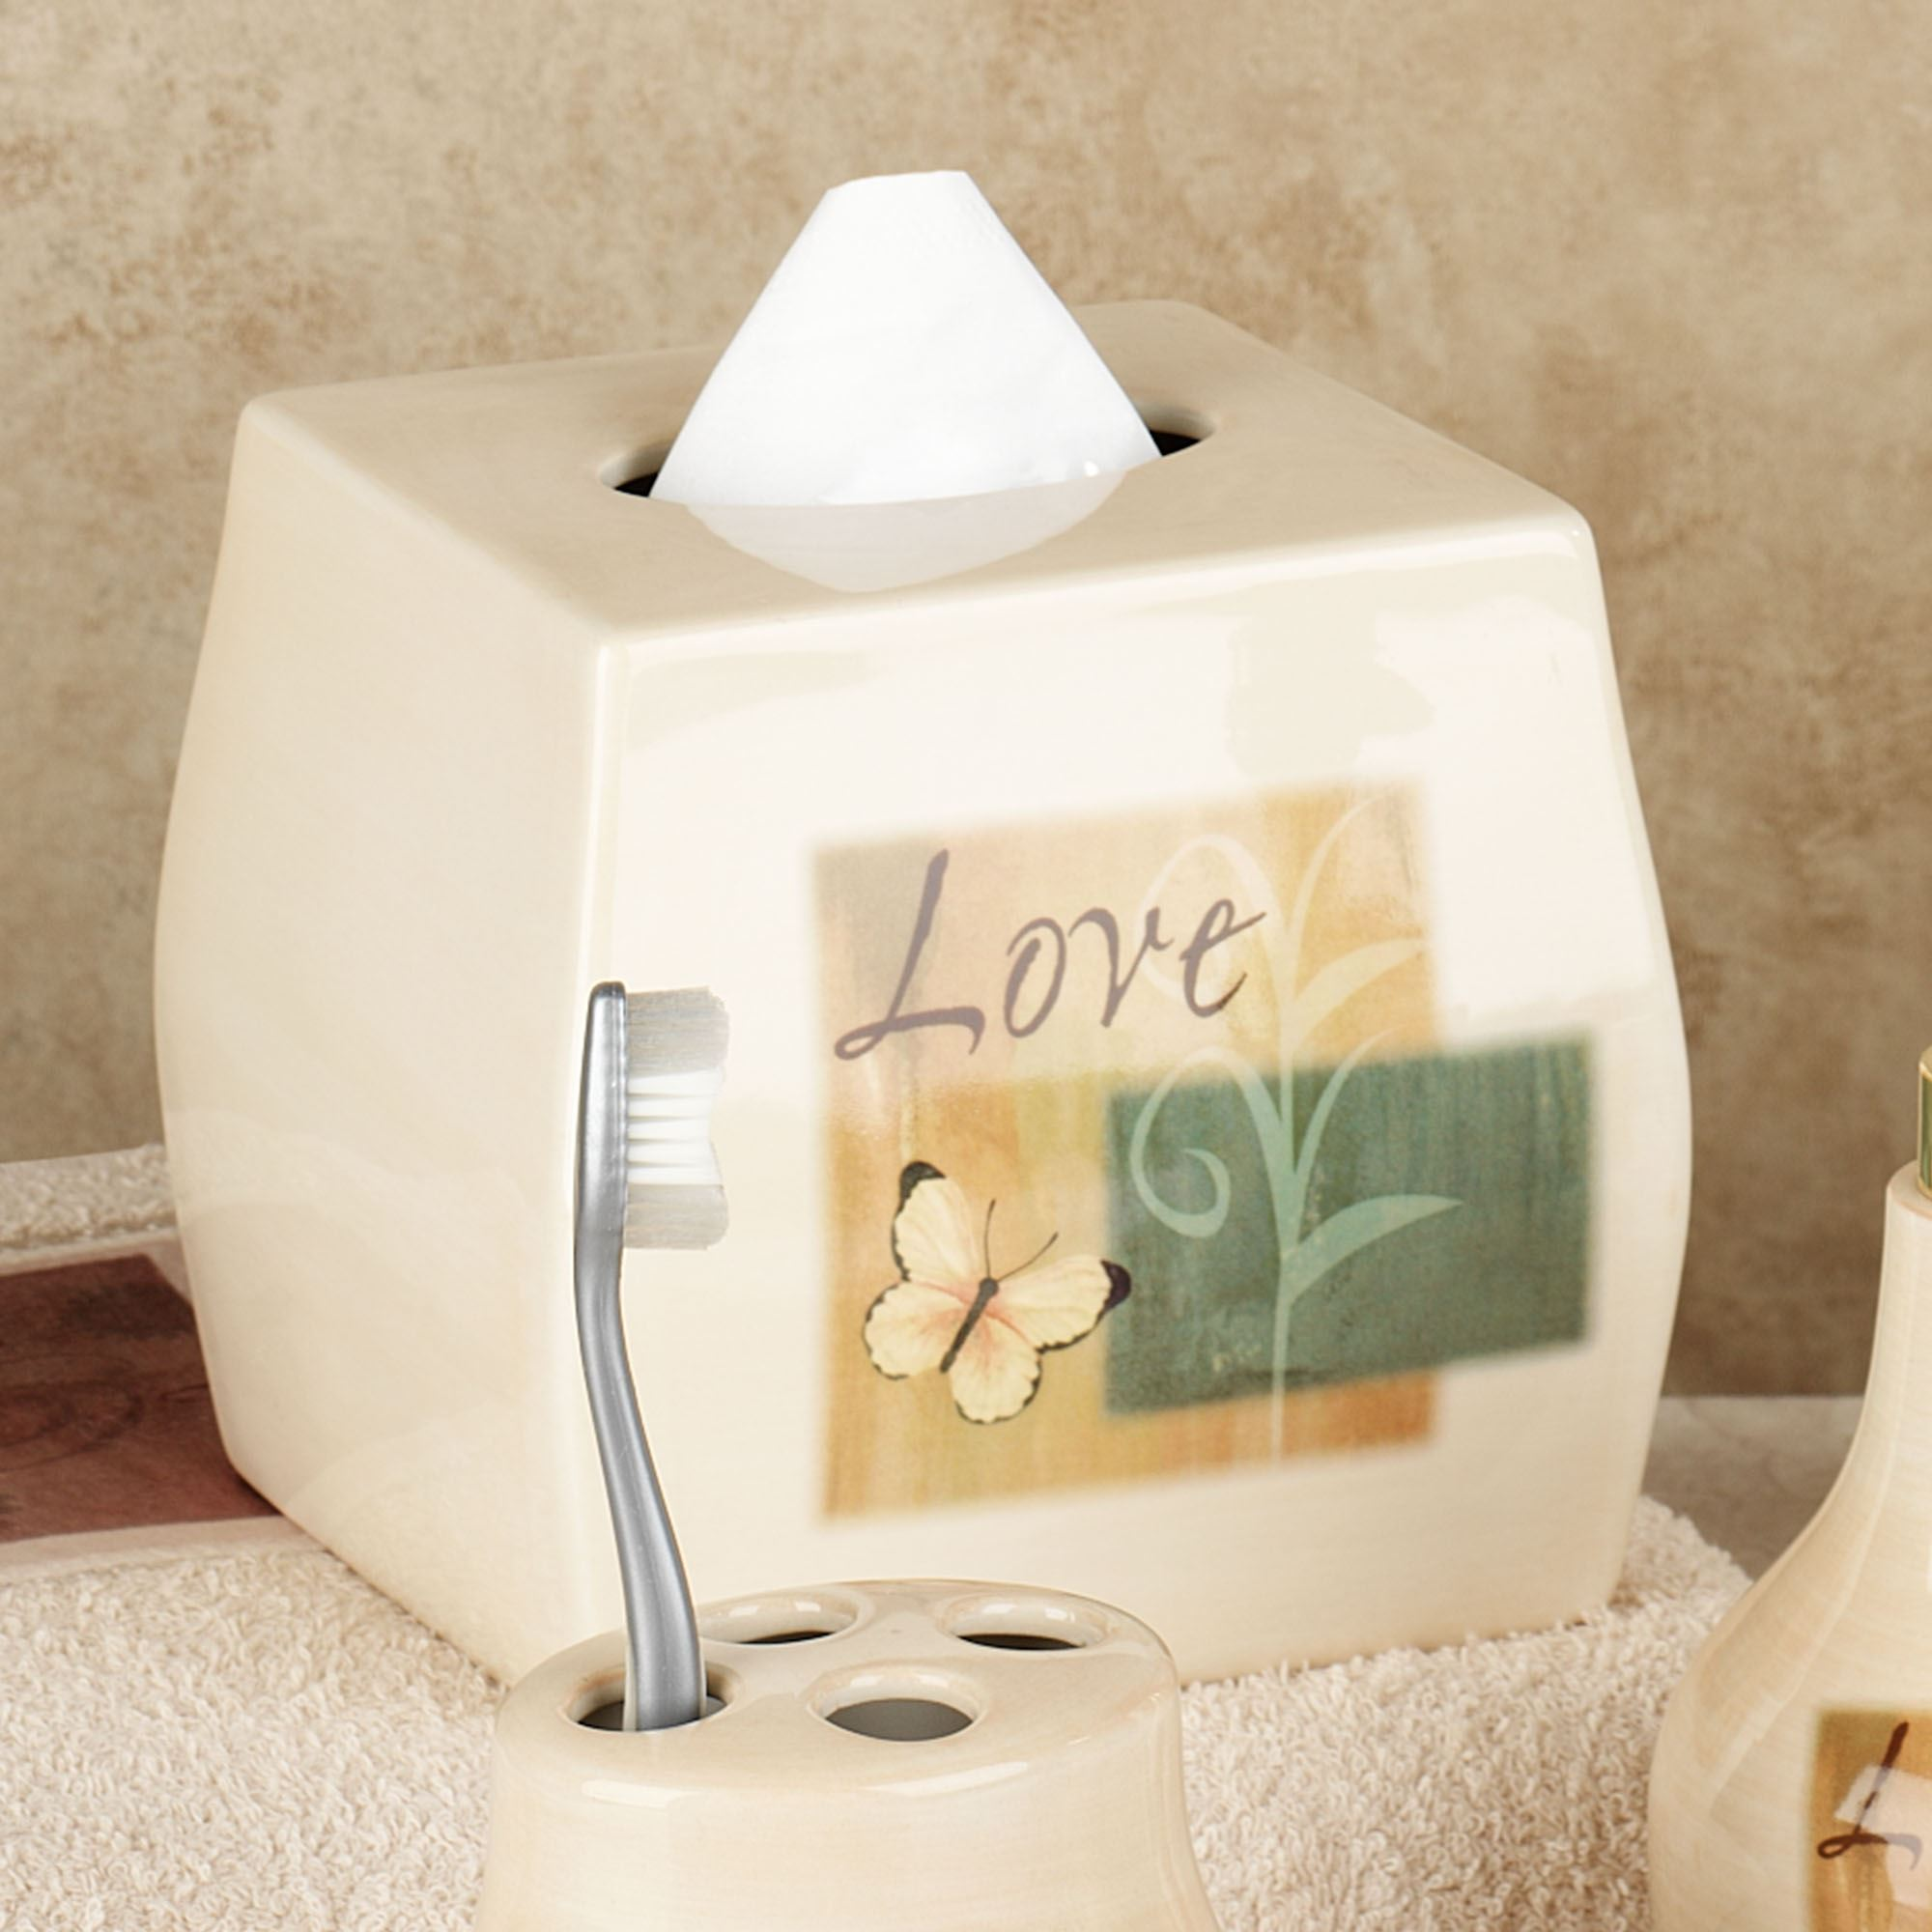 Tranquility Inspirational Bath Accessories Lotion Soap Dispenser Beige Touch To Zoom